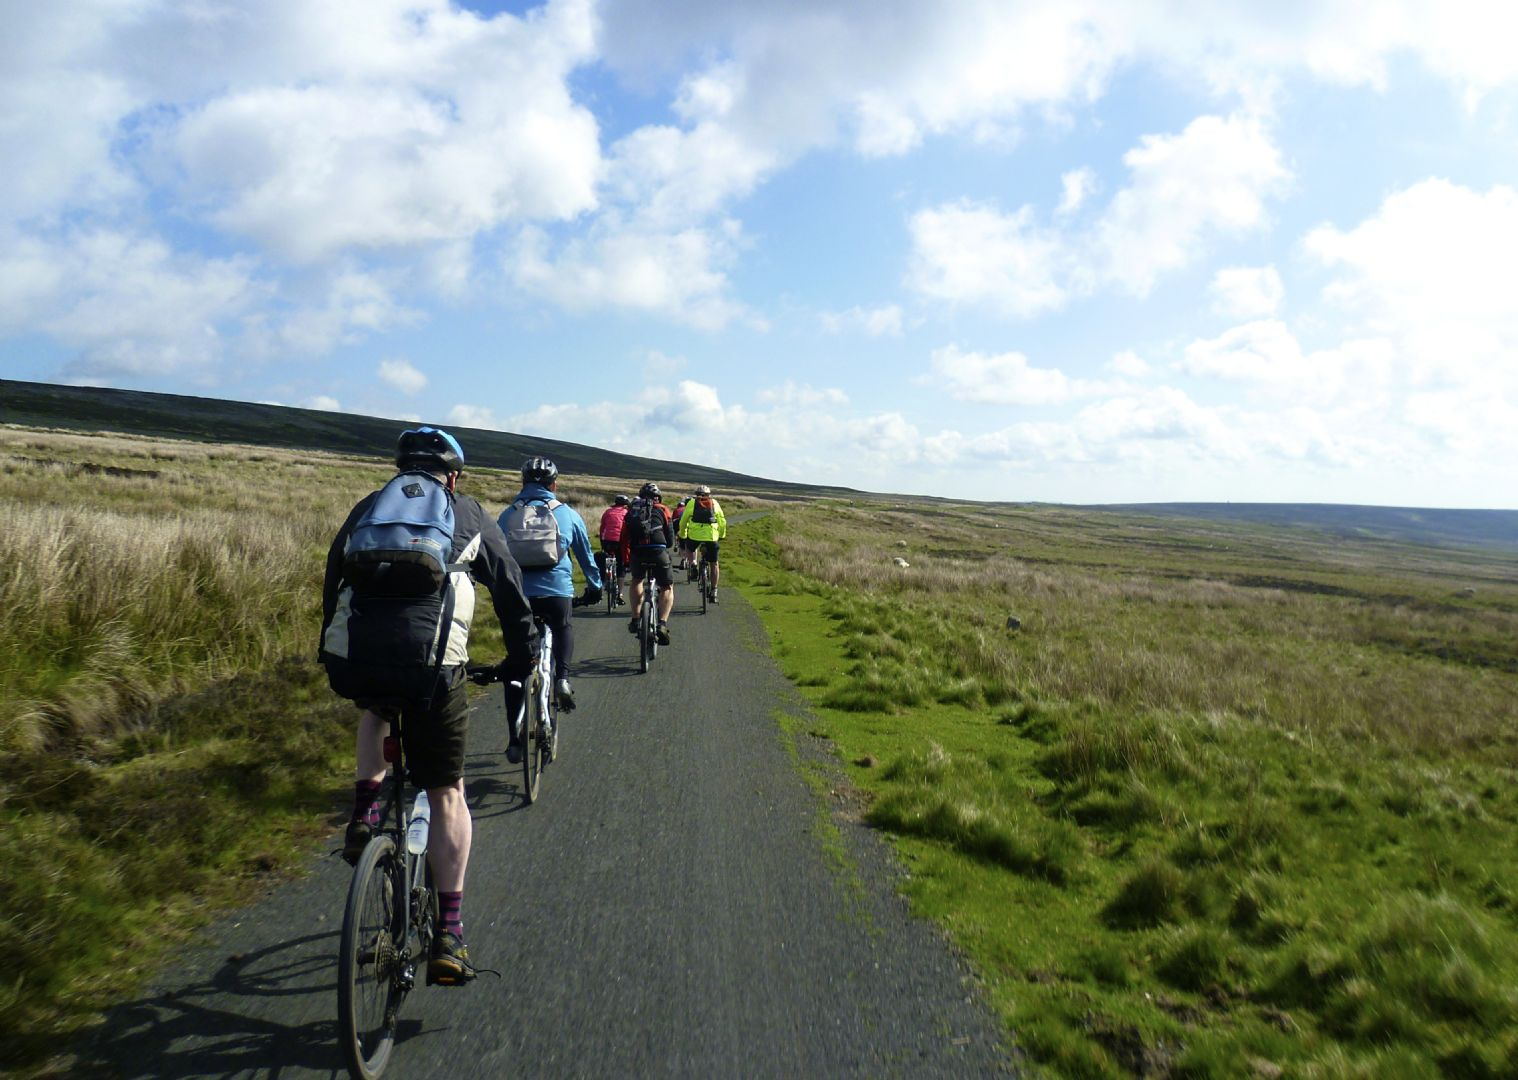 P1020465.jpg - UK - C2C - Coast to Coast 3 Days Cycling - Self-Guided Leisure Cycling Holiday - Leisure Cycling